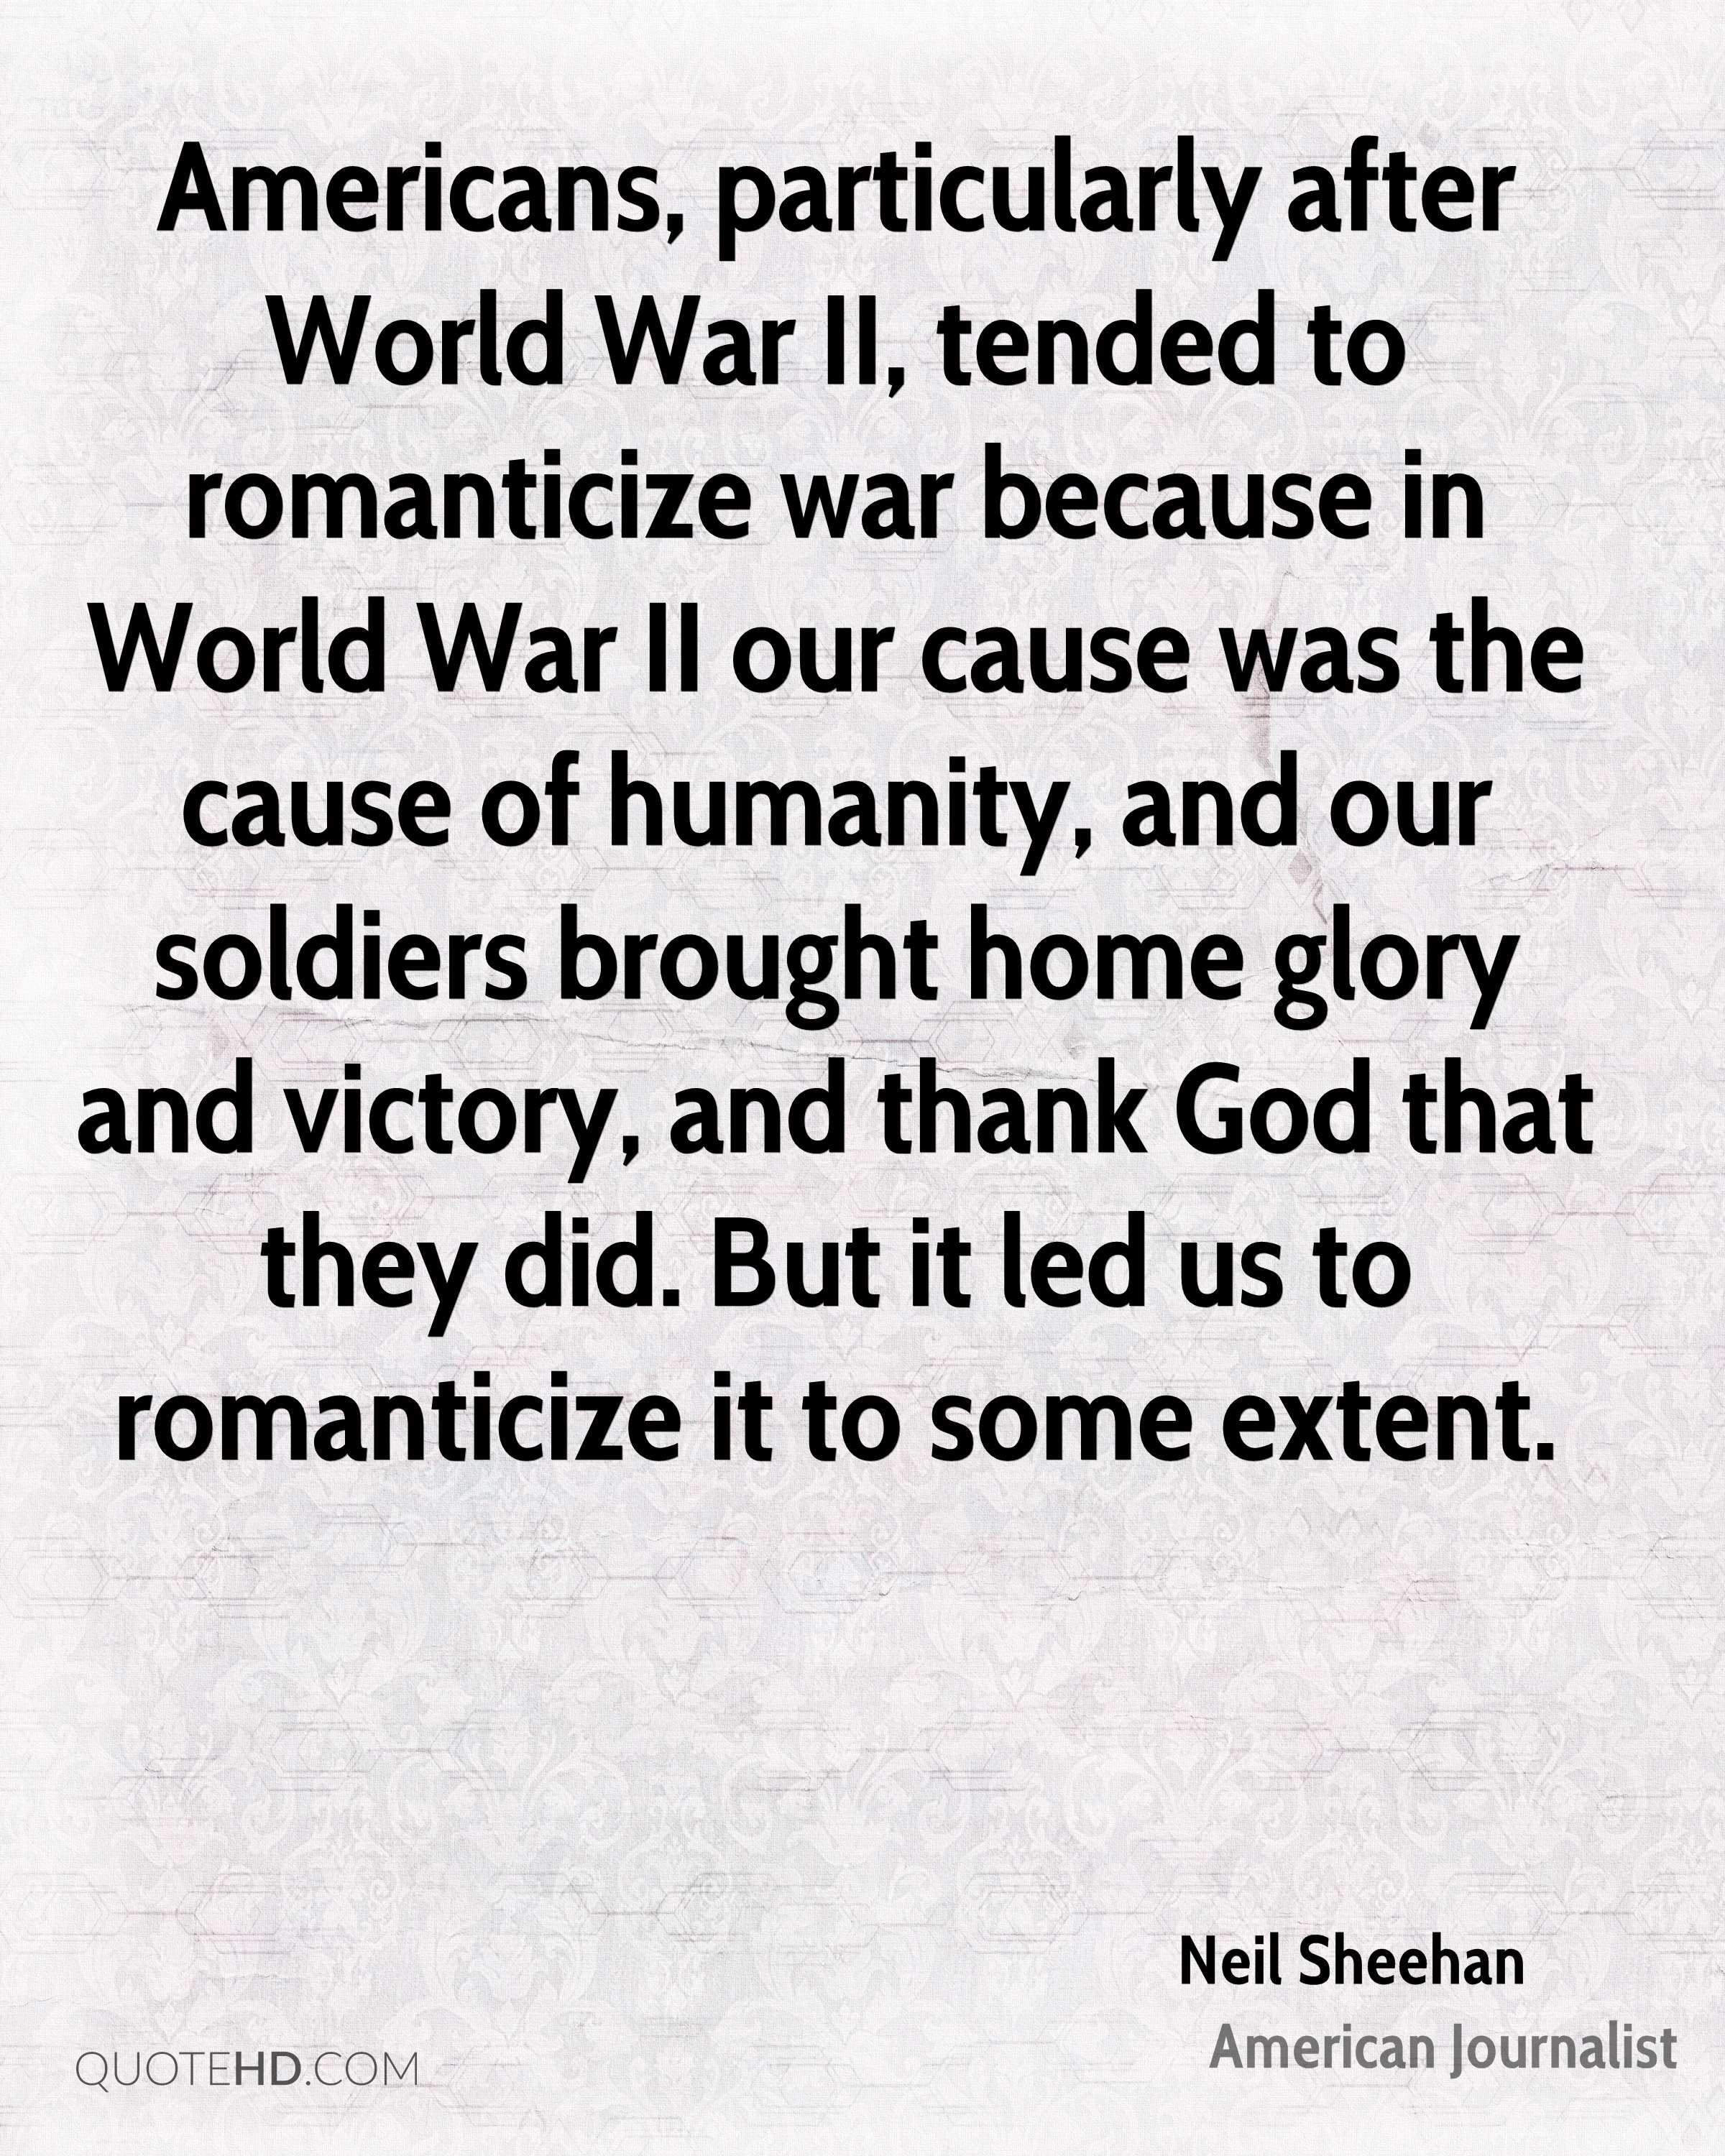 Americans, particularly after World War II, tended to romanticize war because in World War II our cause was the cause of humanity, and our soldiers brought home glory and victory, and thank God that they did. But it led us to romanticize it to some extent.